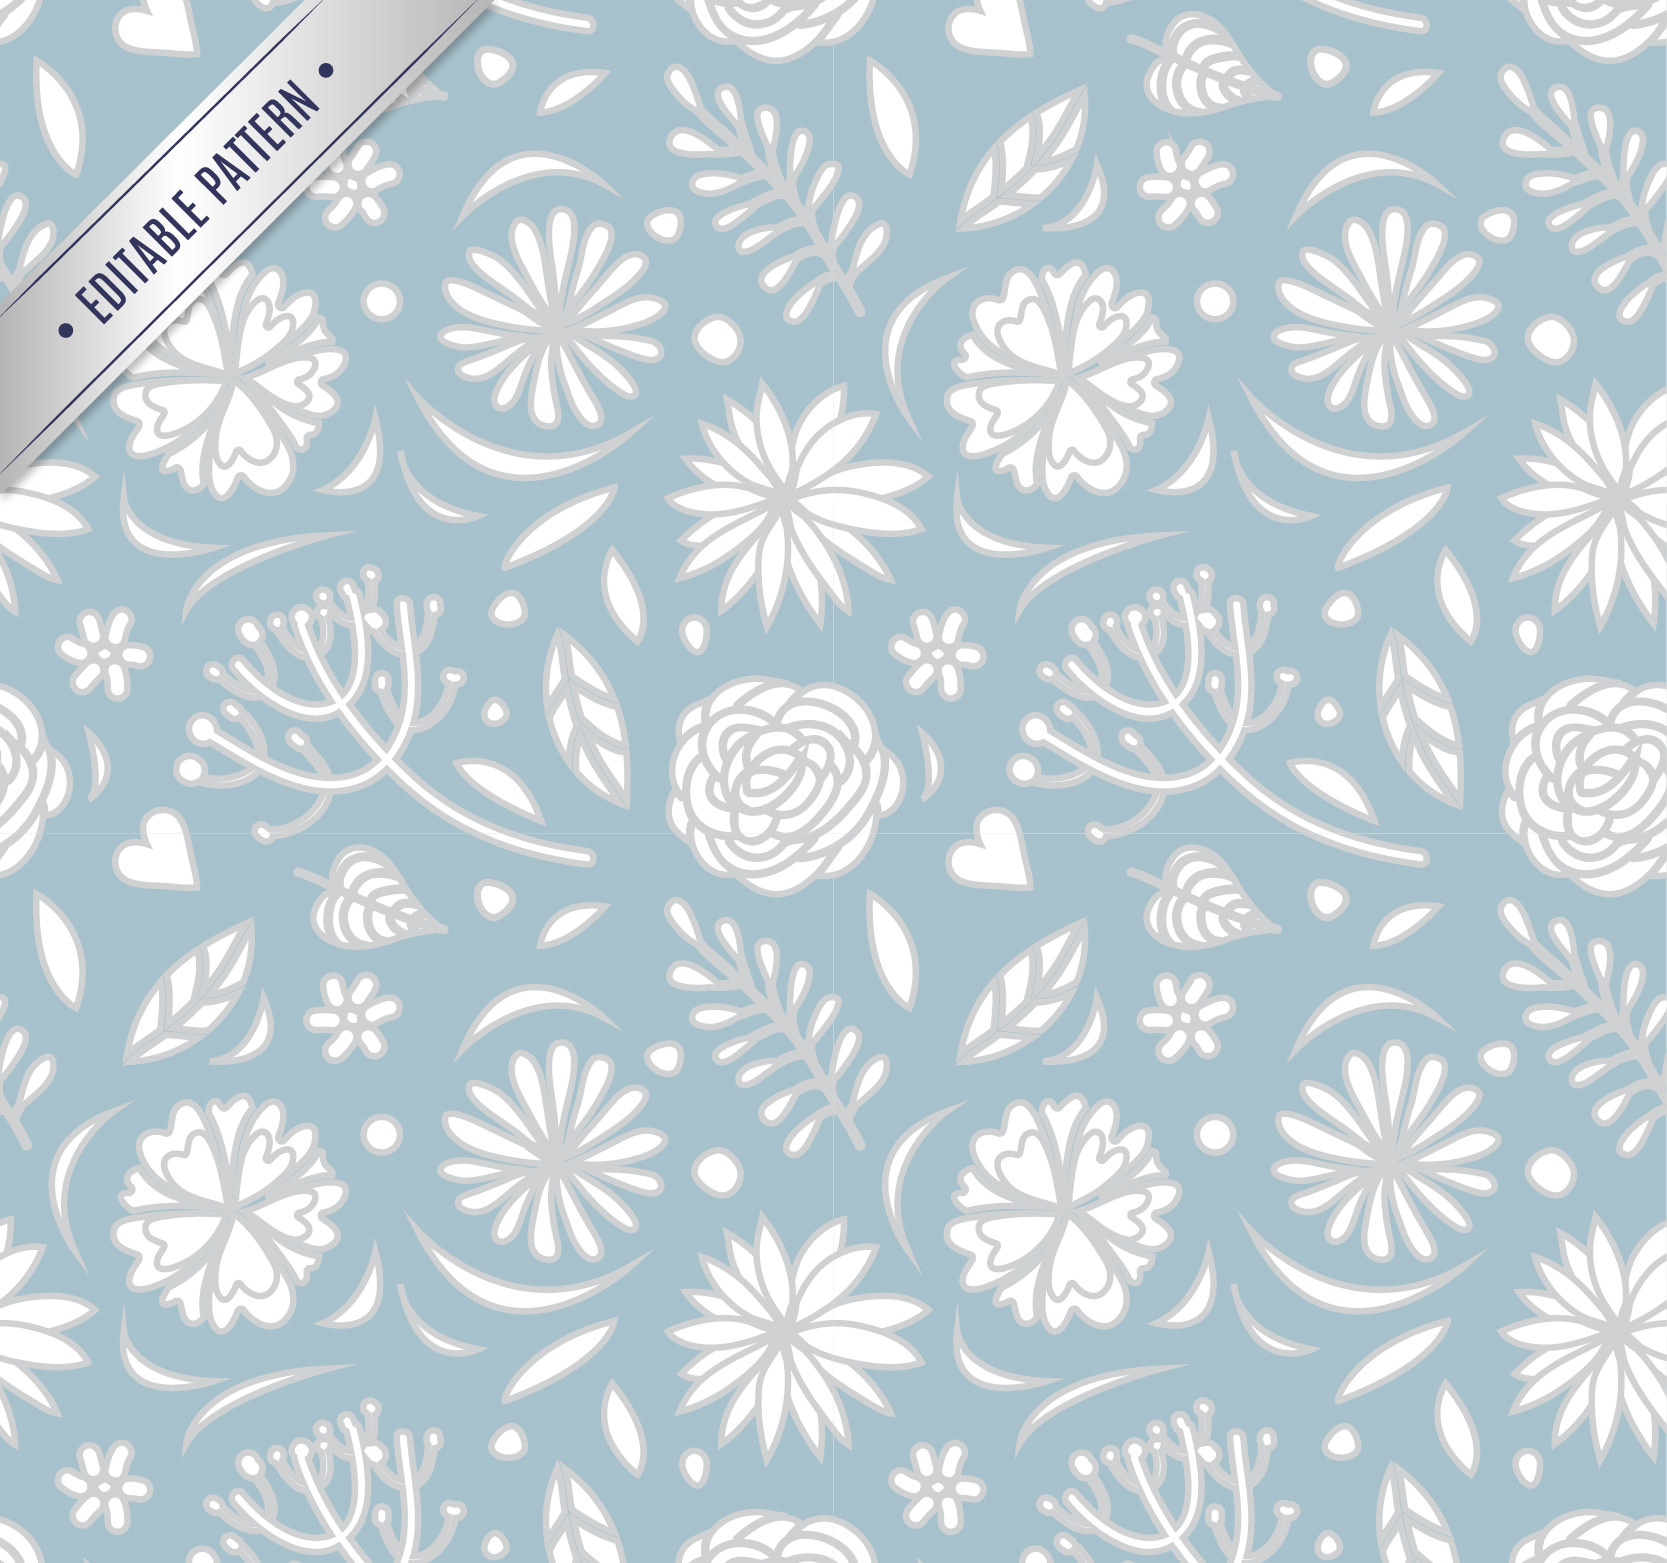 Retro floral pattern Free Vector